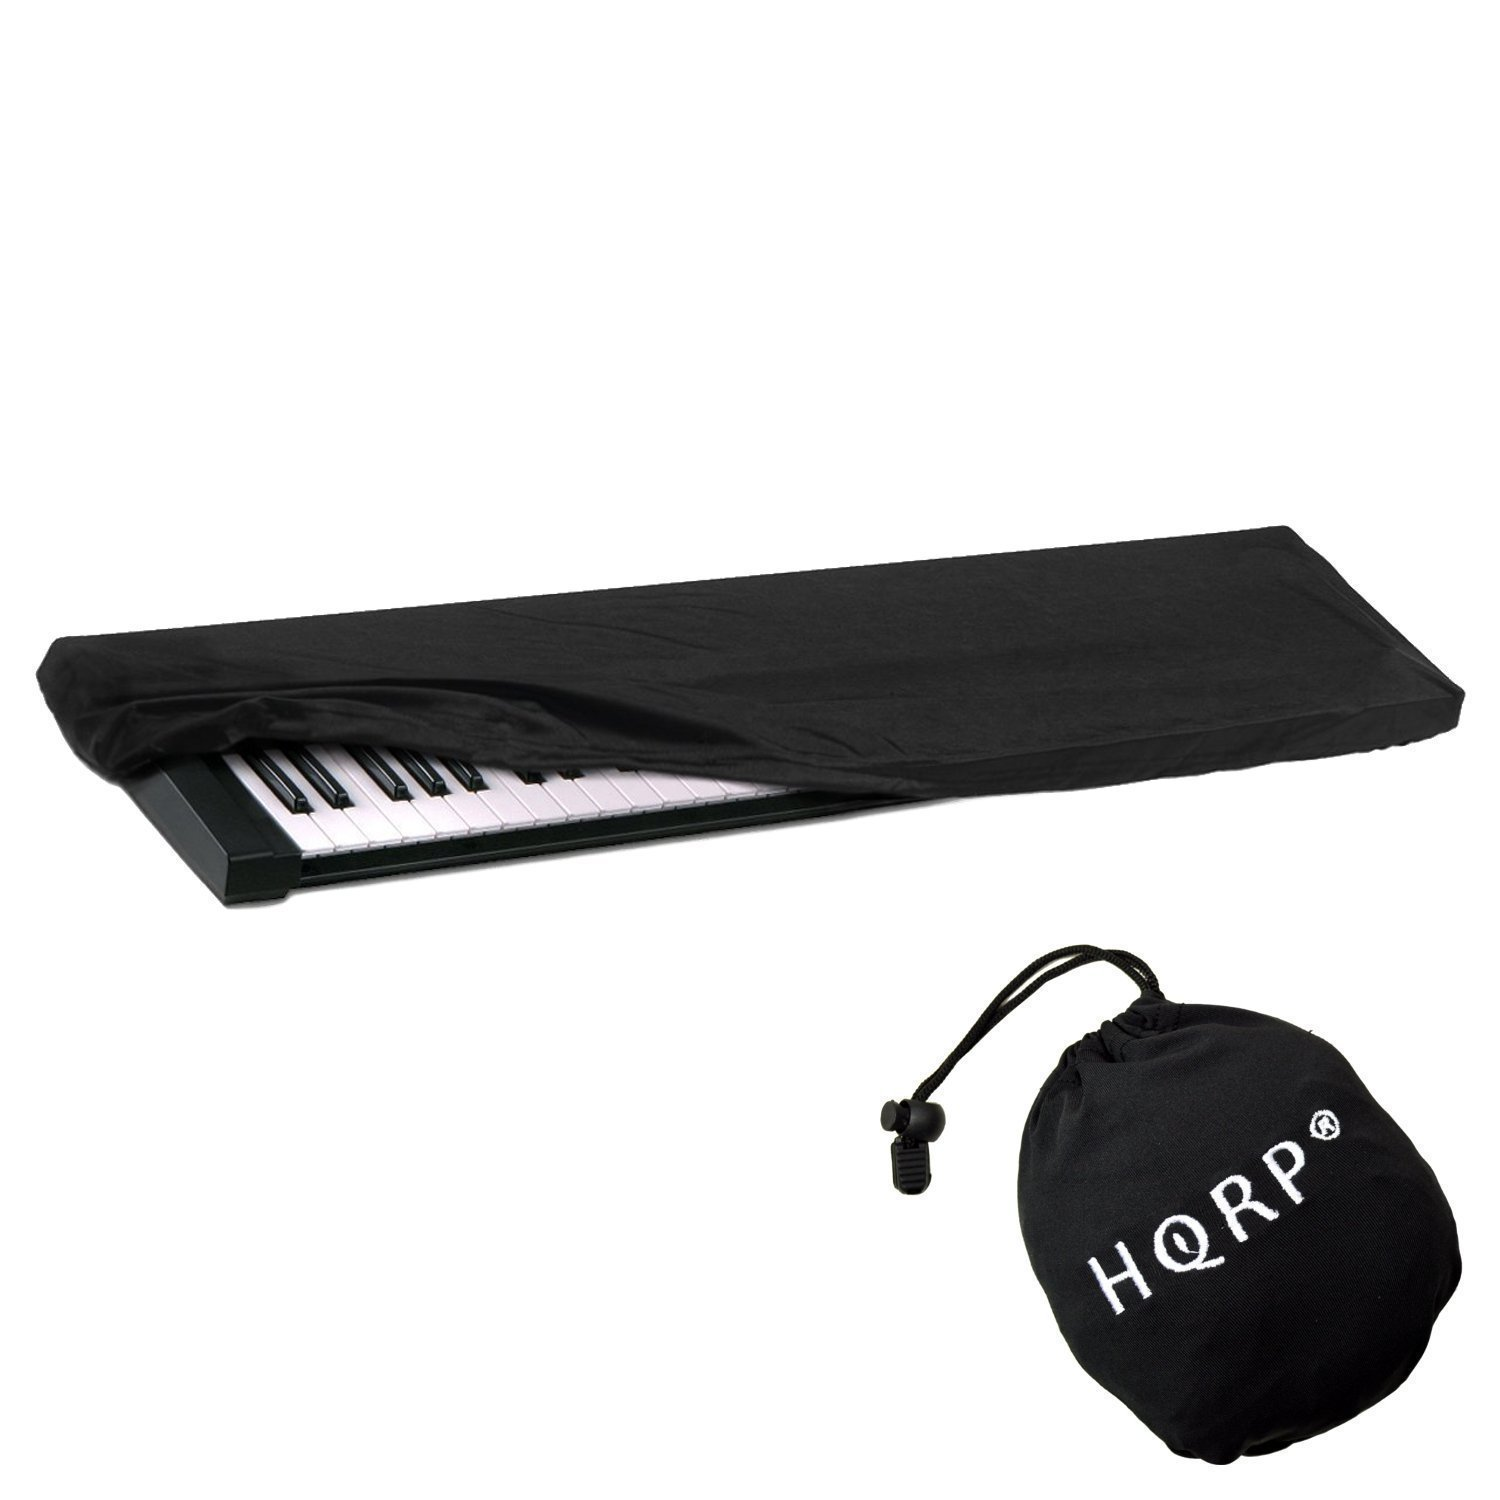 HQRP Elastic Dust Cover w/ Bag (Black) for Williams Legato / Allegro 2 Electronic Keyboard Digital Piano + HQRP Coaster